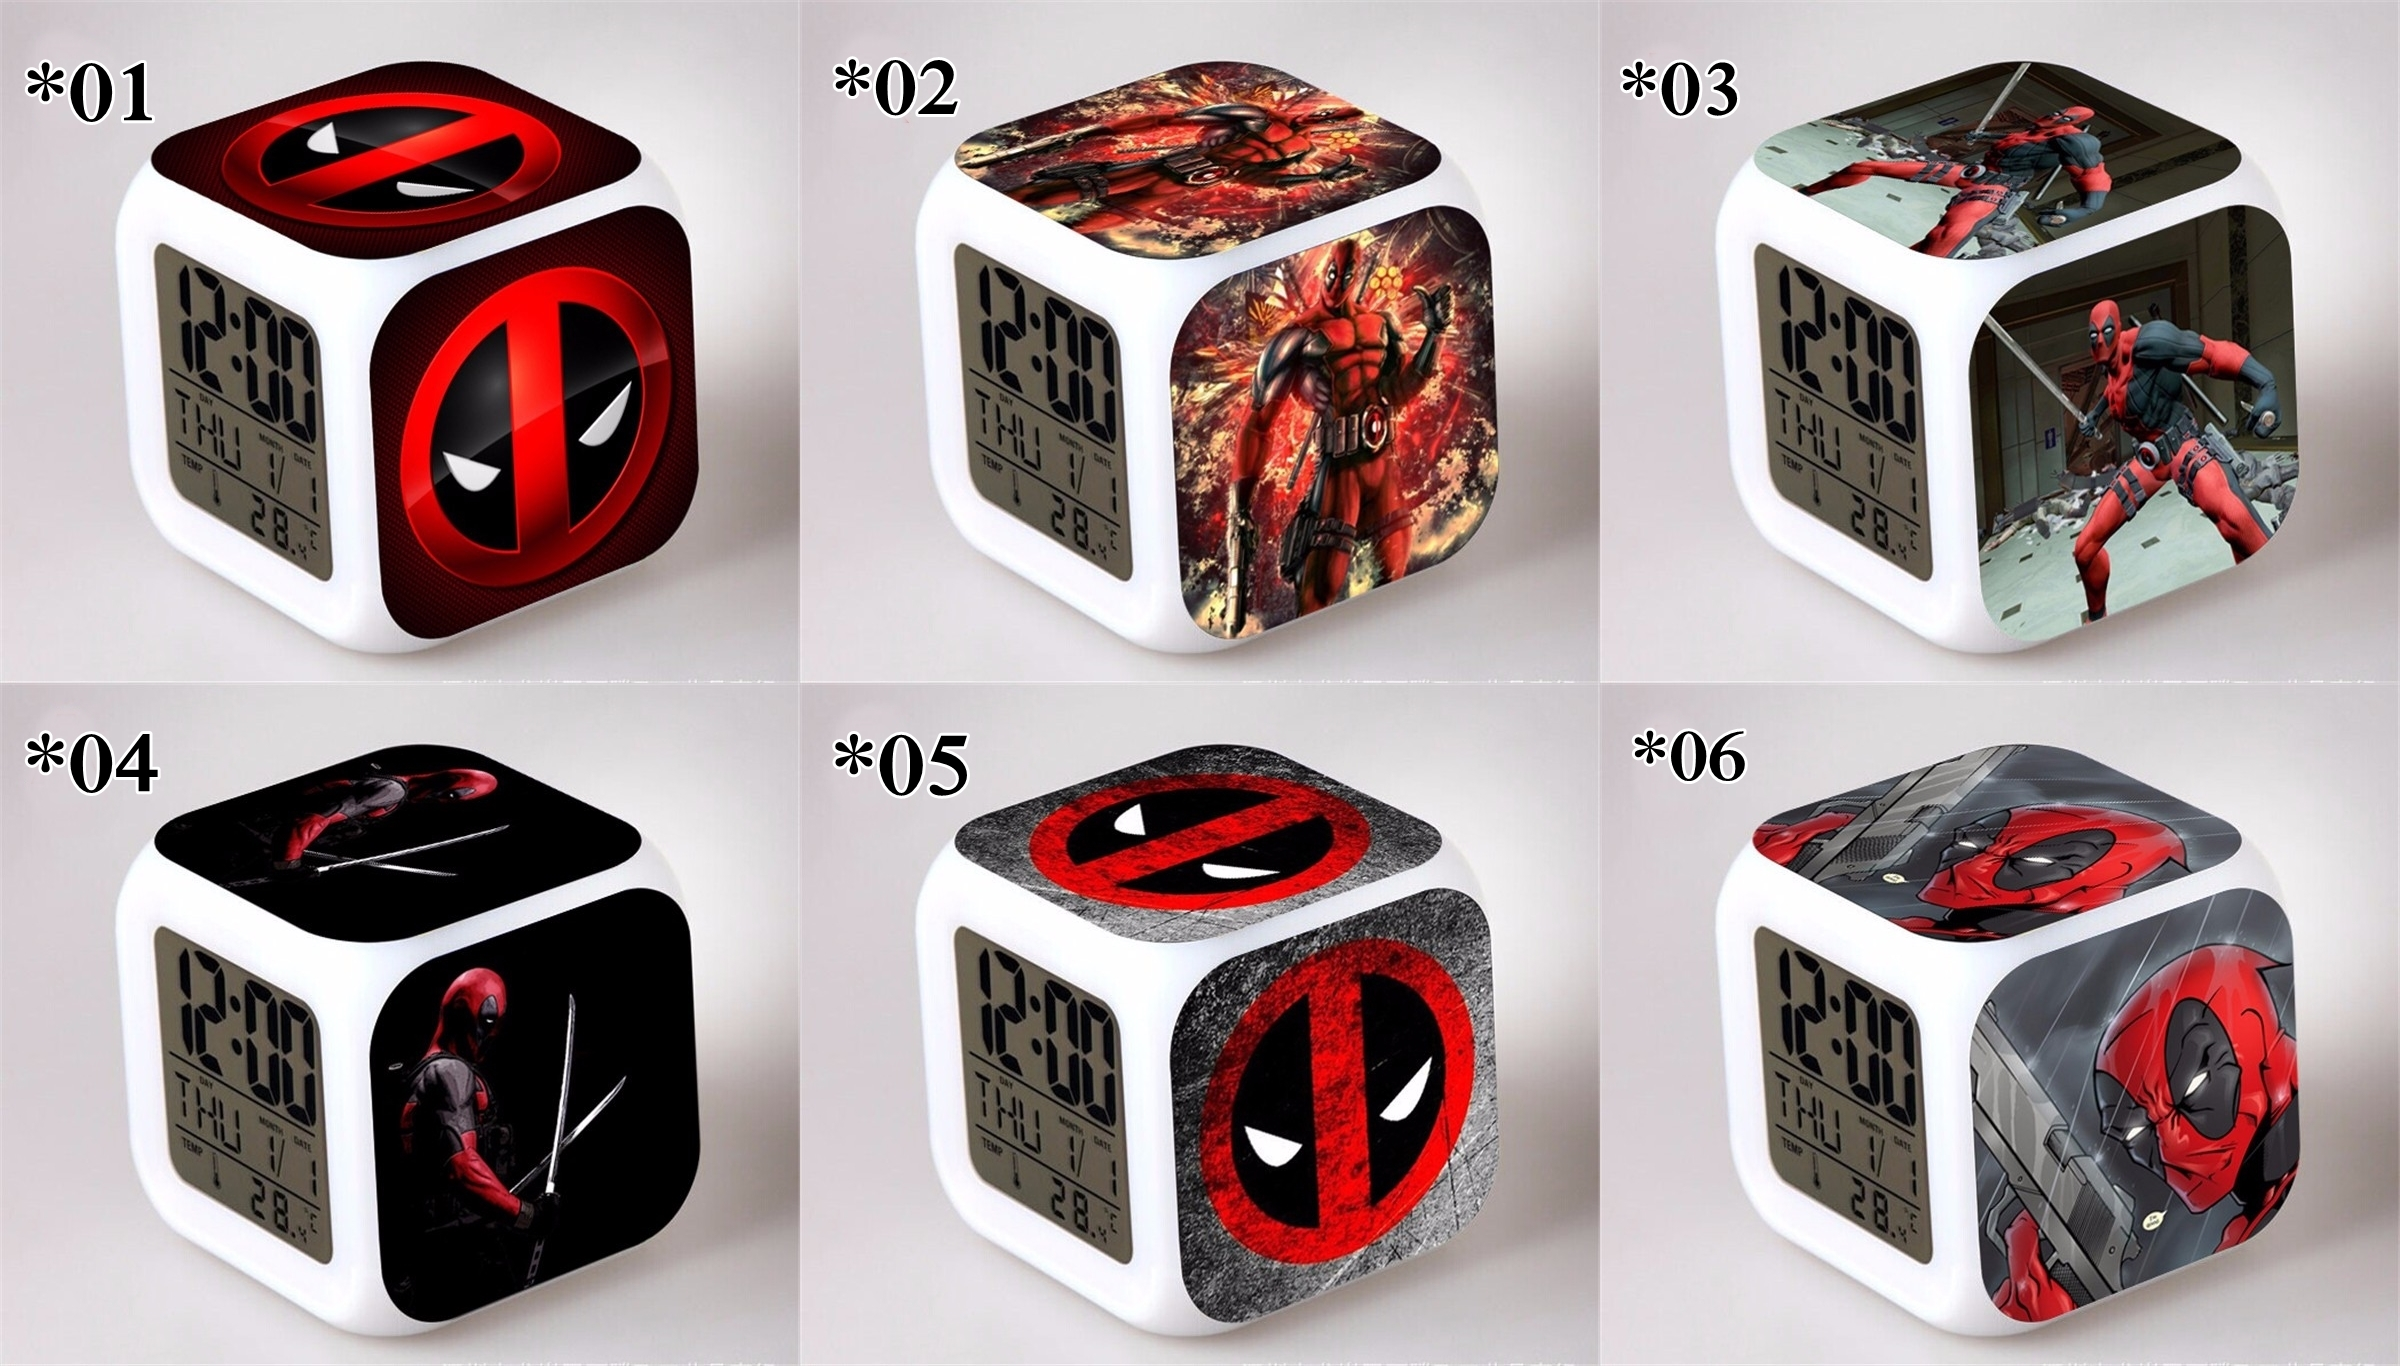 Relojes digitales Dead Pool *02